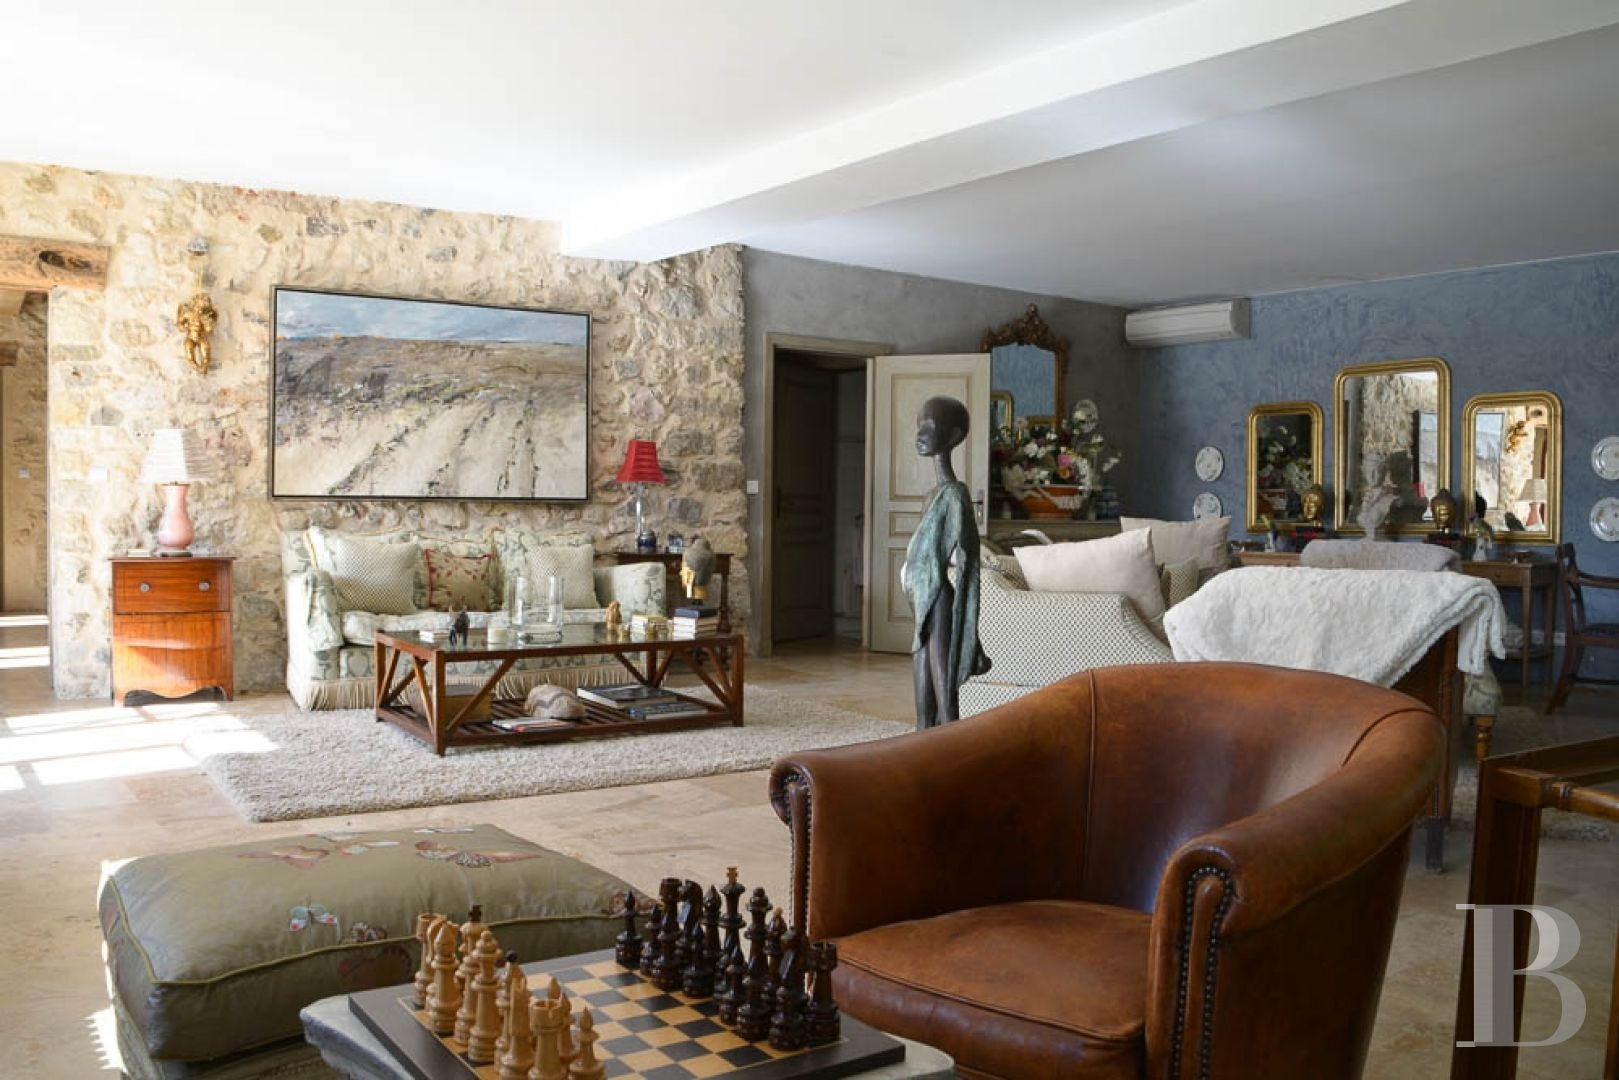 property for sale France provence cote dazur residences traditional - 6 zoom